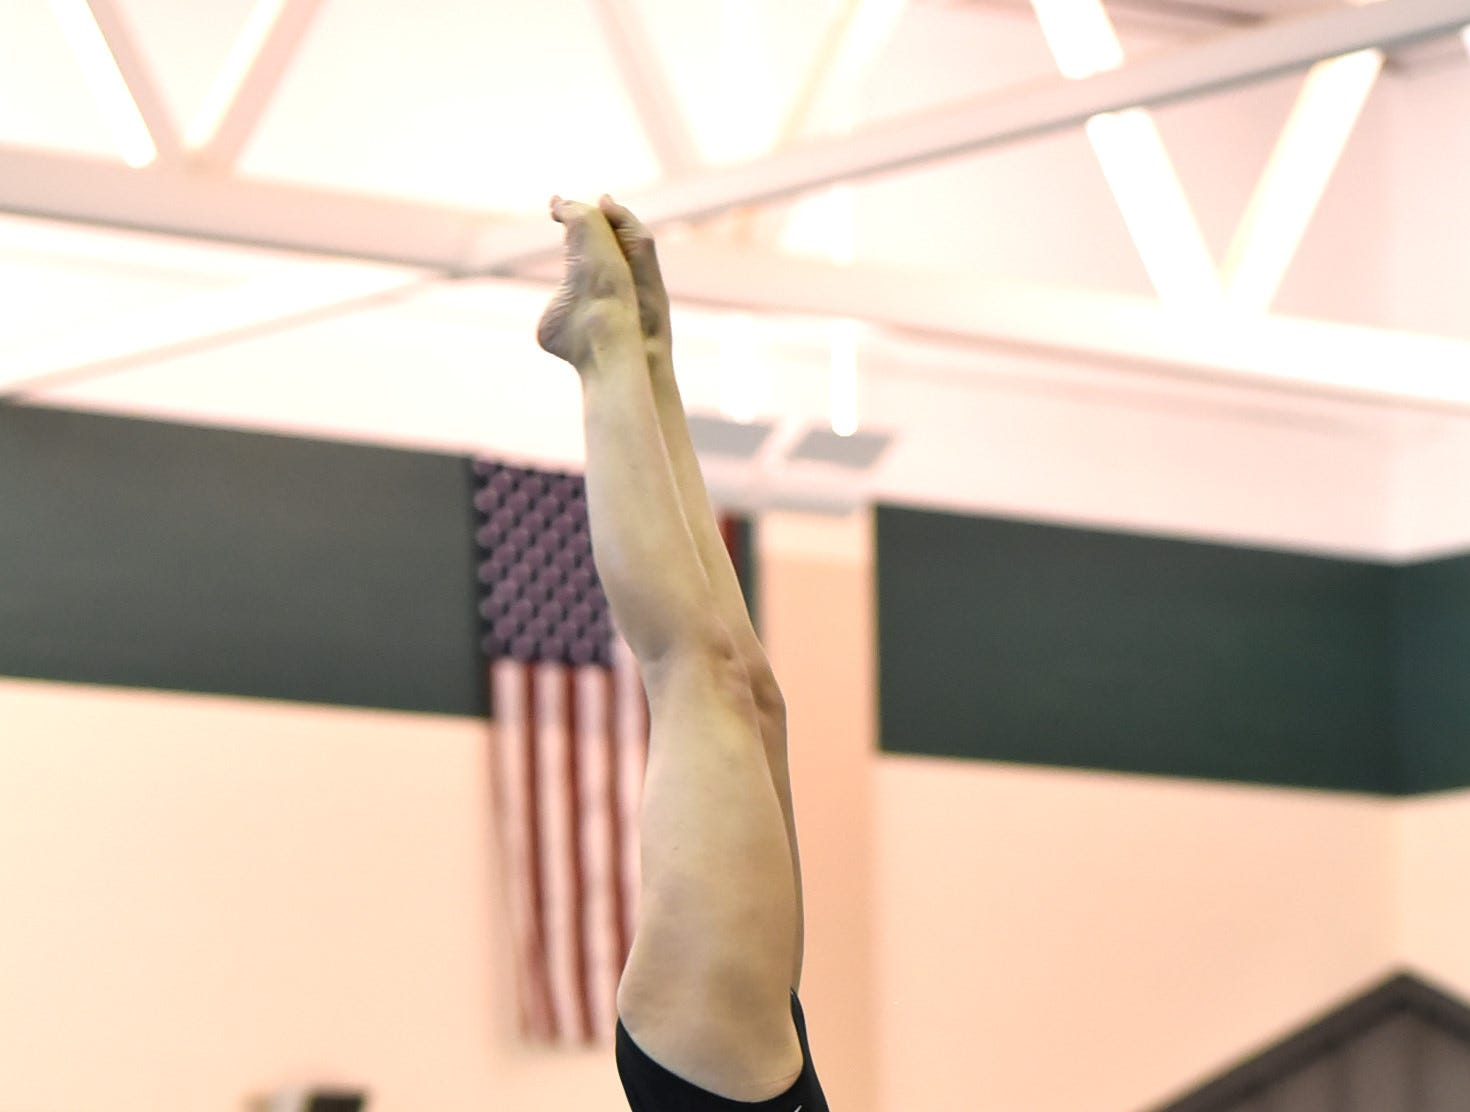 It's on to the water for Karina Ashton of Mason as she dives at the Southwest Ohio Swimming and Diving Classic, January 19, 2019.